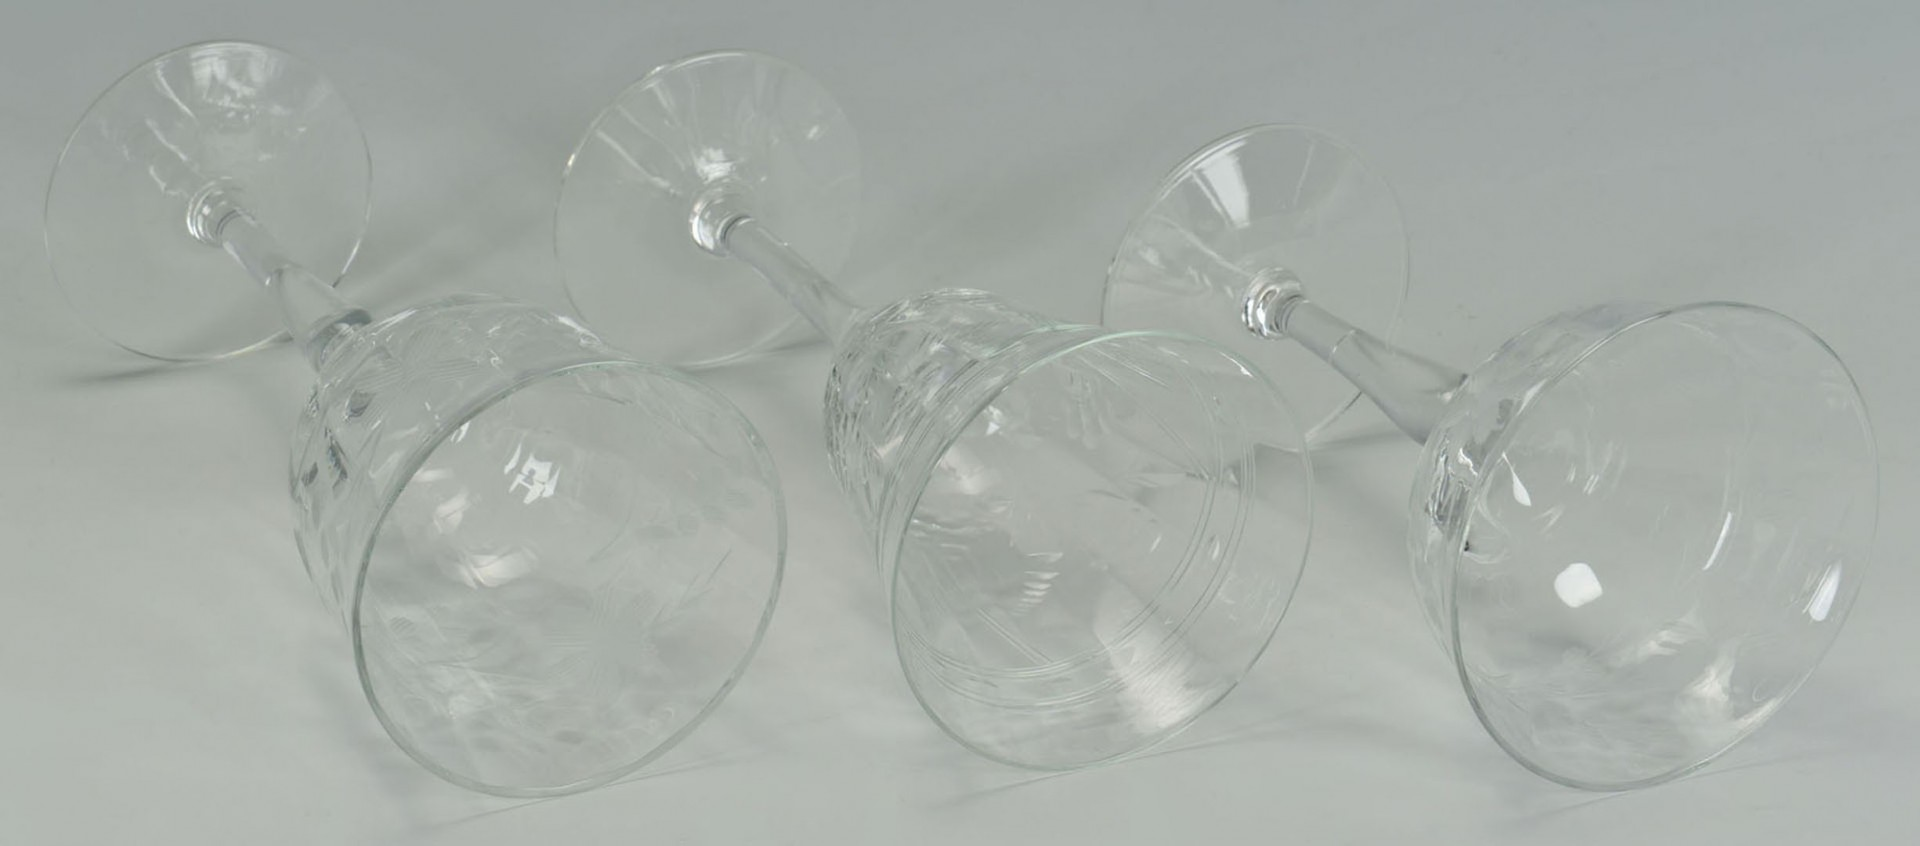 Lot 2872305: Grouping of 27 Etched Crystal Glasses